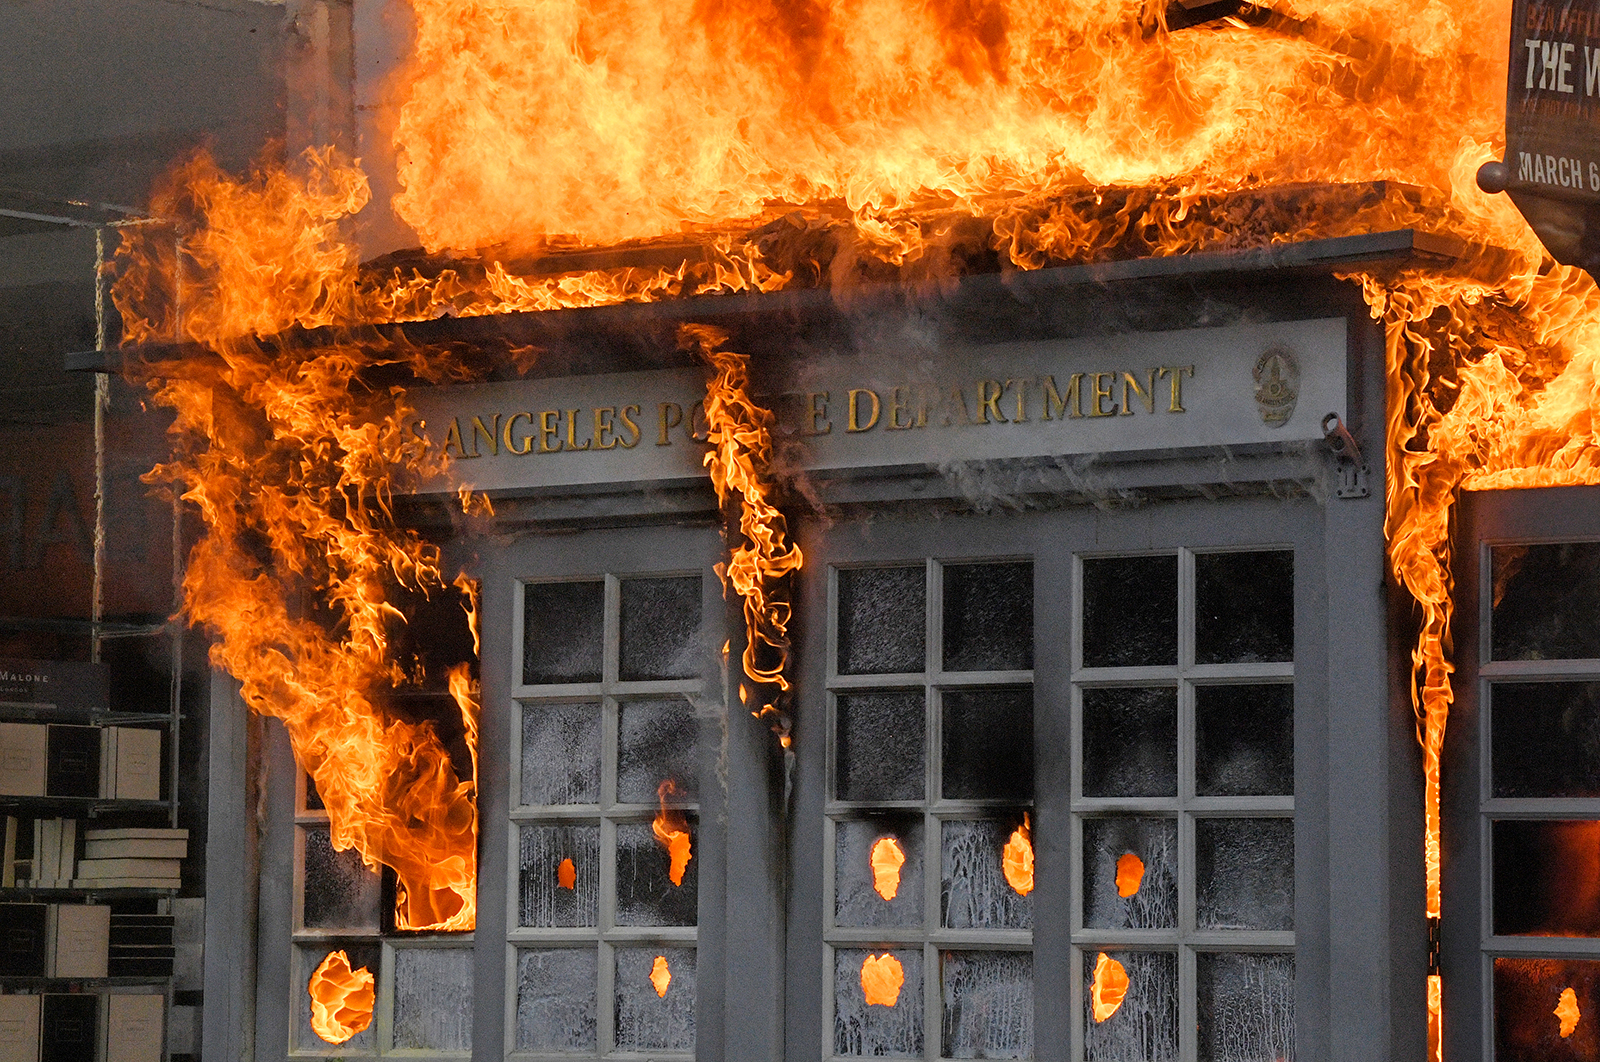 A Los Angeles Police Department kiosk burns in The Grove shopping center during a protest over the death of George Floyd on Saturday, May 30.